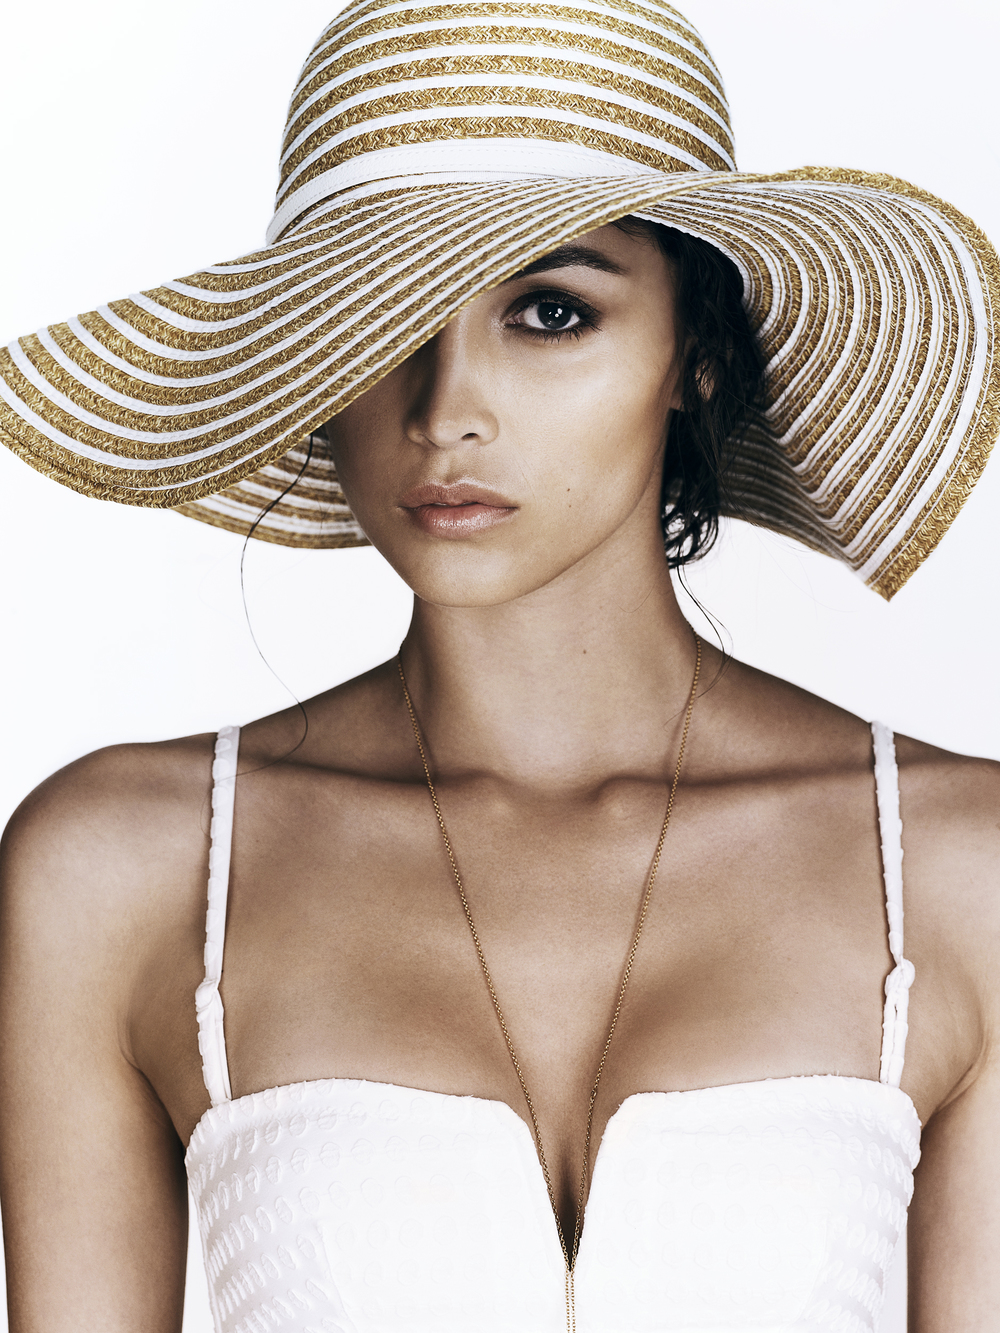 Bikini Top - Princesse Tam Tam | Necklace - Layana London | Hat - Melissa Odabash